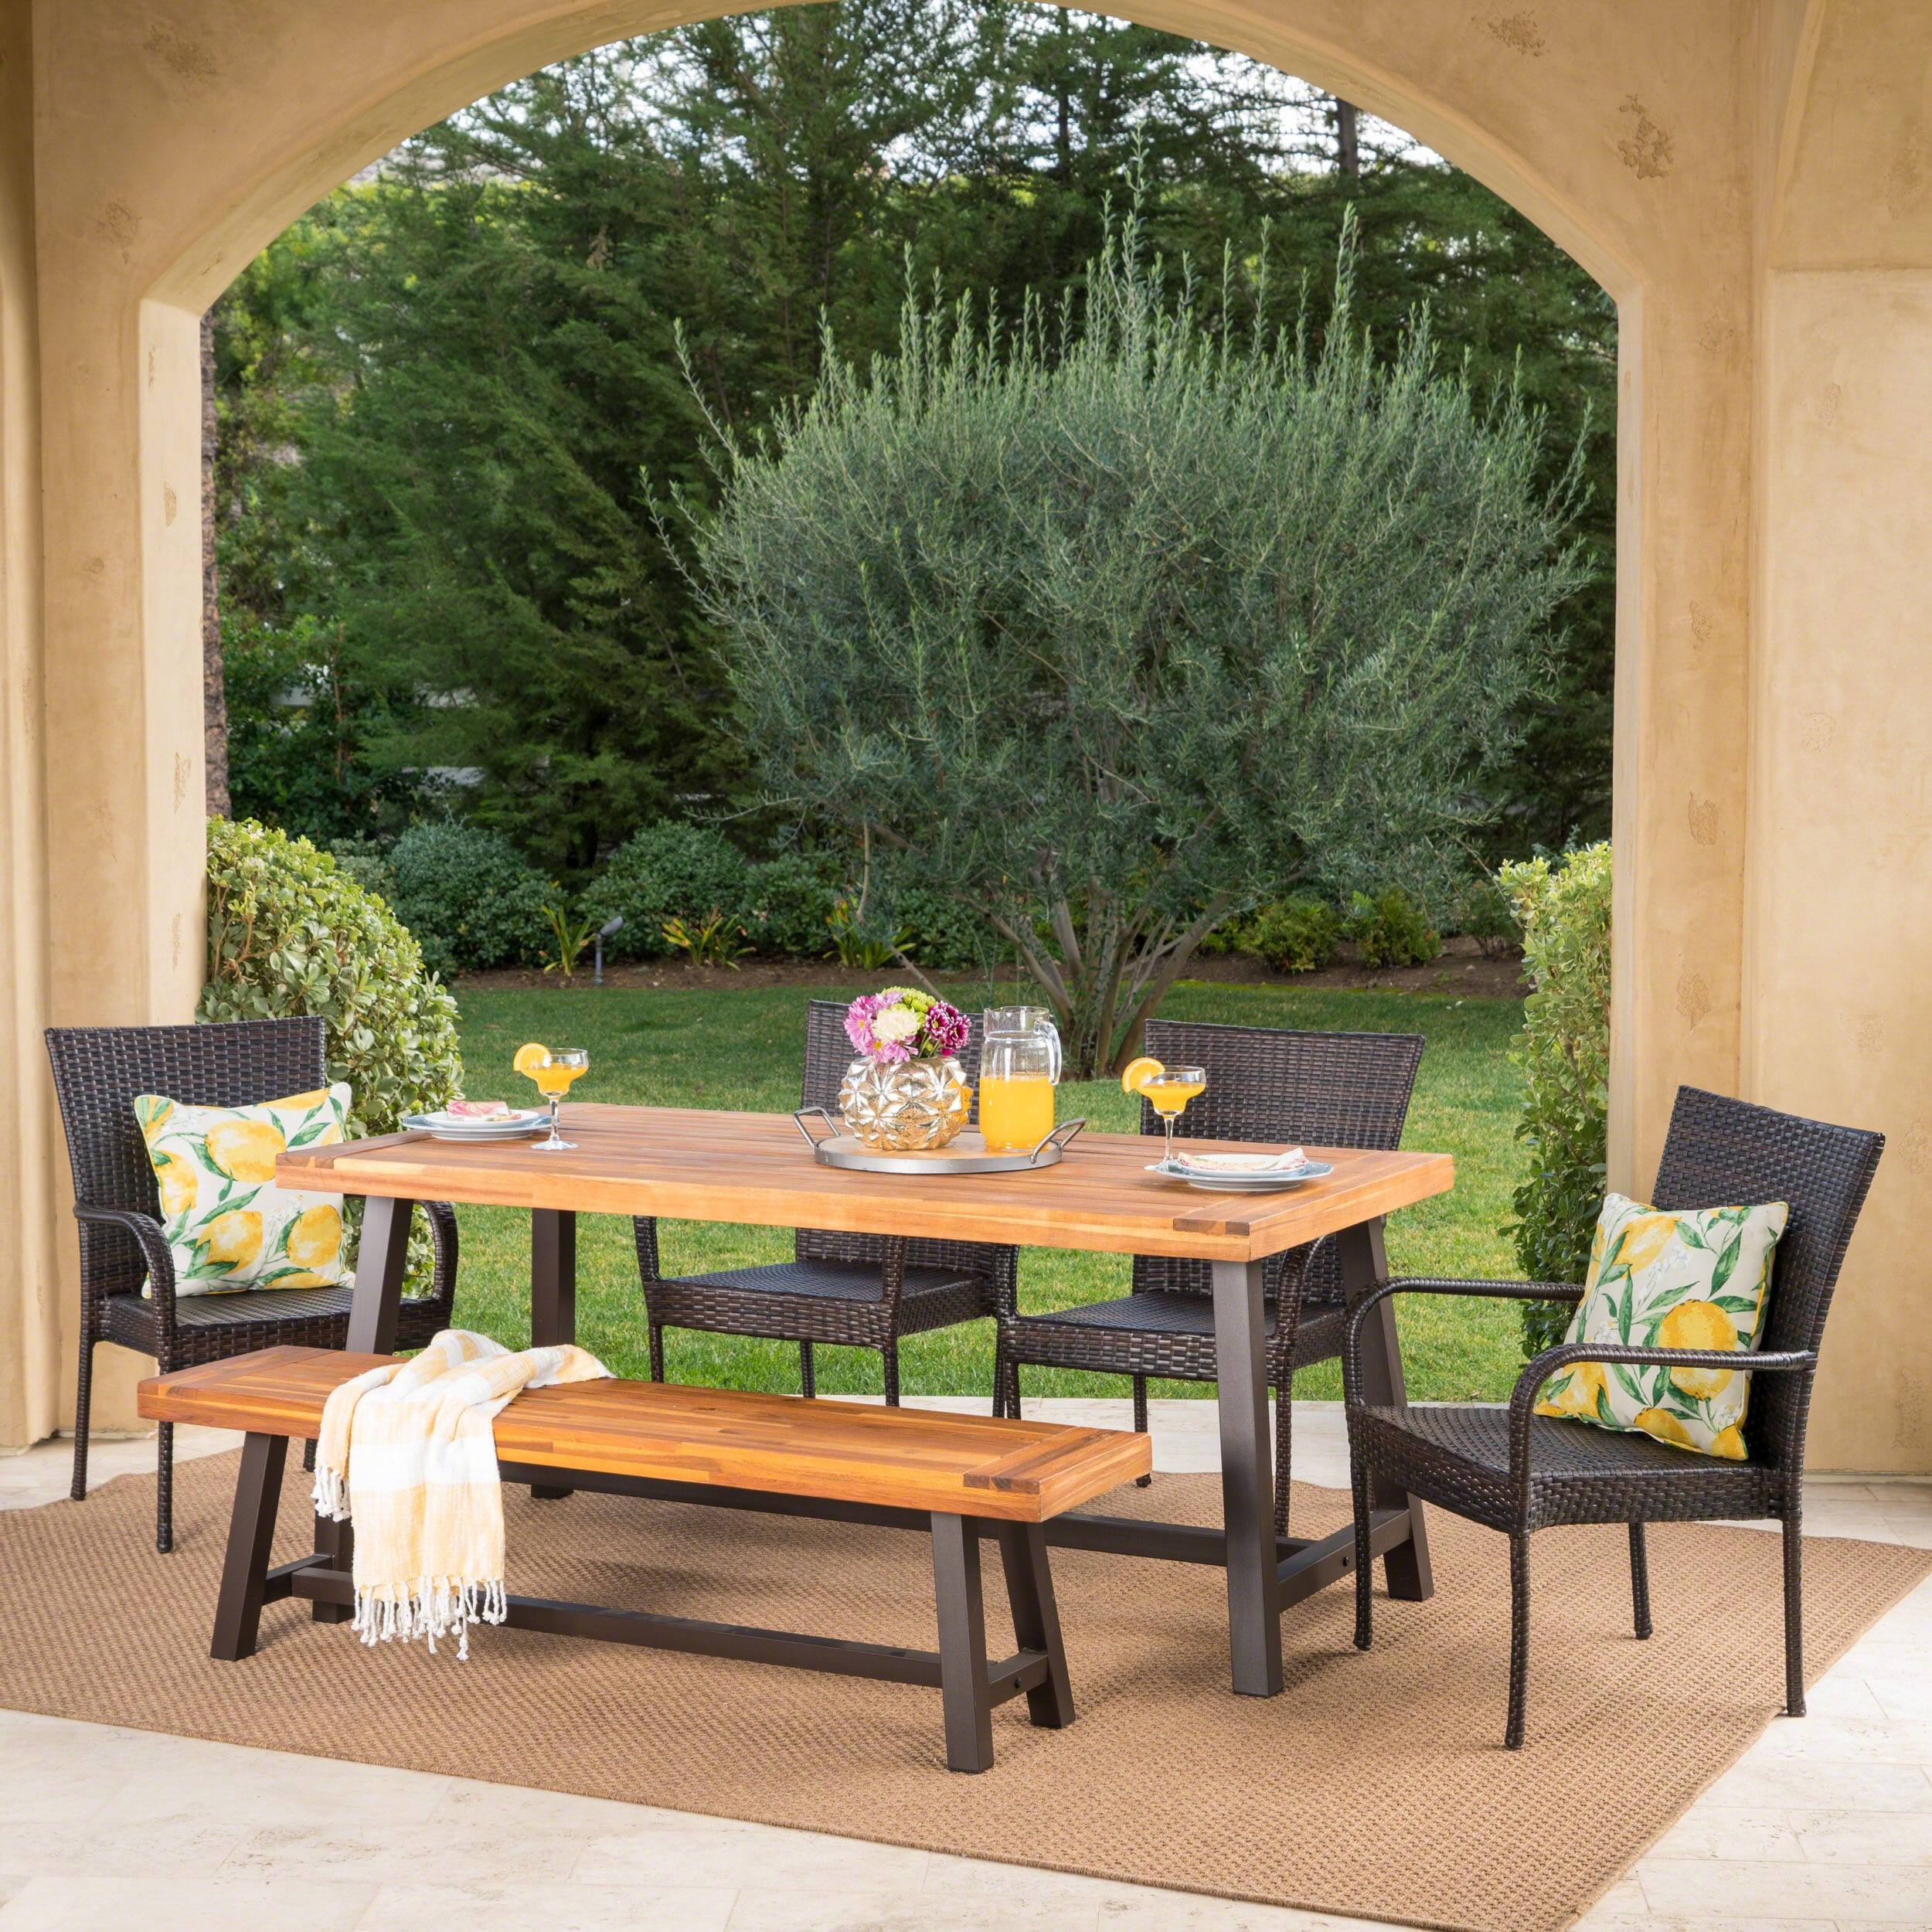 Cooper outdoor 6 piece rectangle acacia wood wicker dining set by christopher knight home